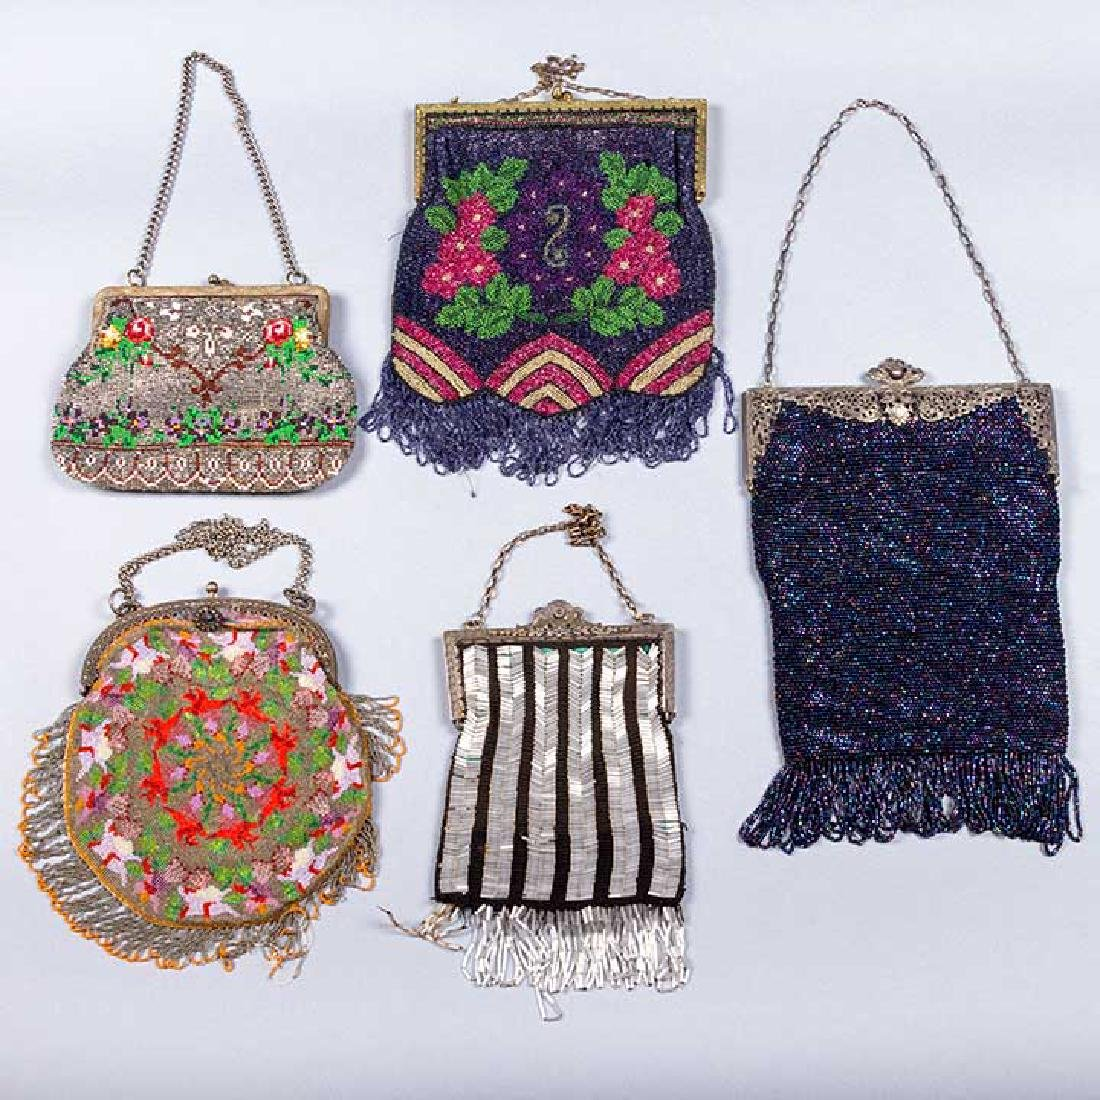 5 FRAMED BEADED BAGS, 1900-1930